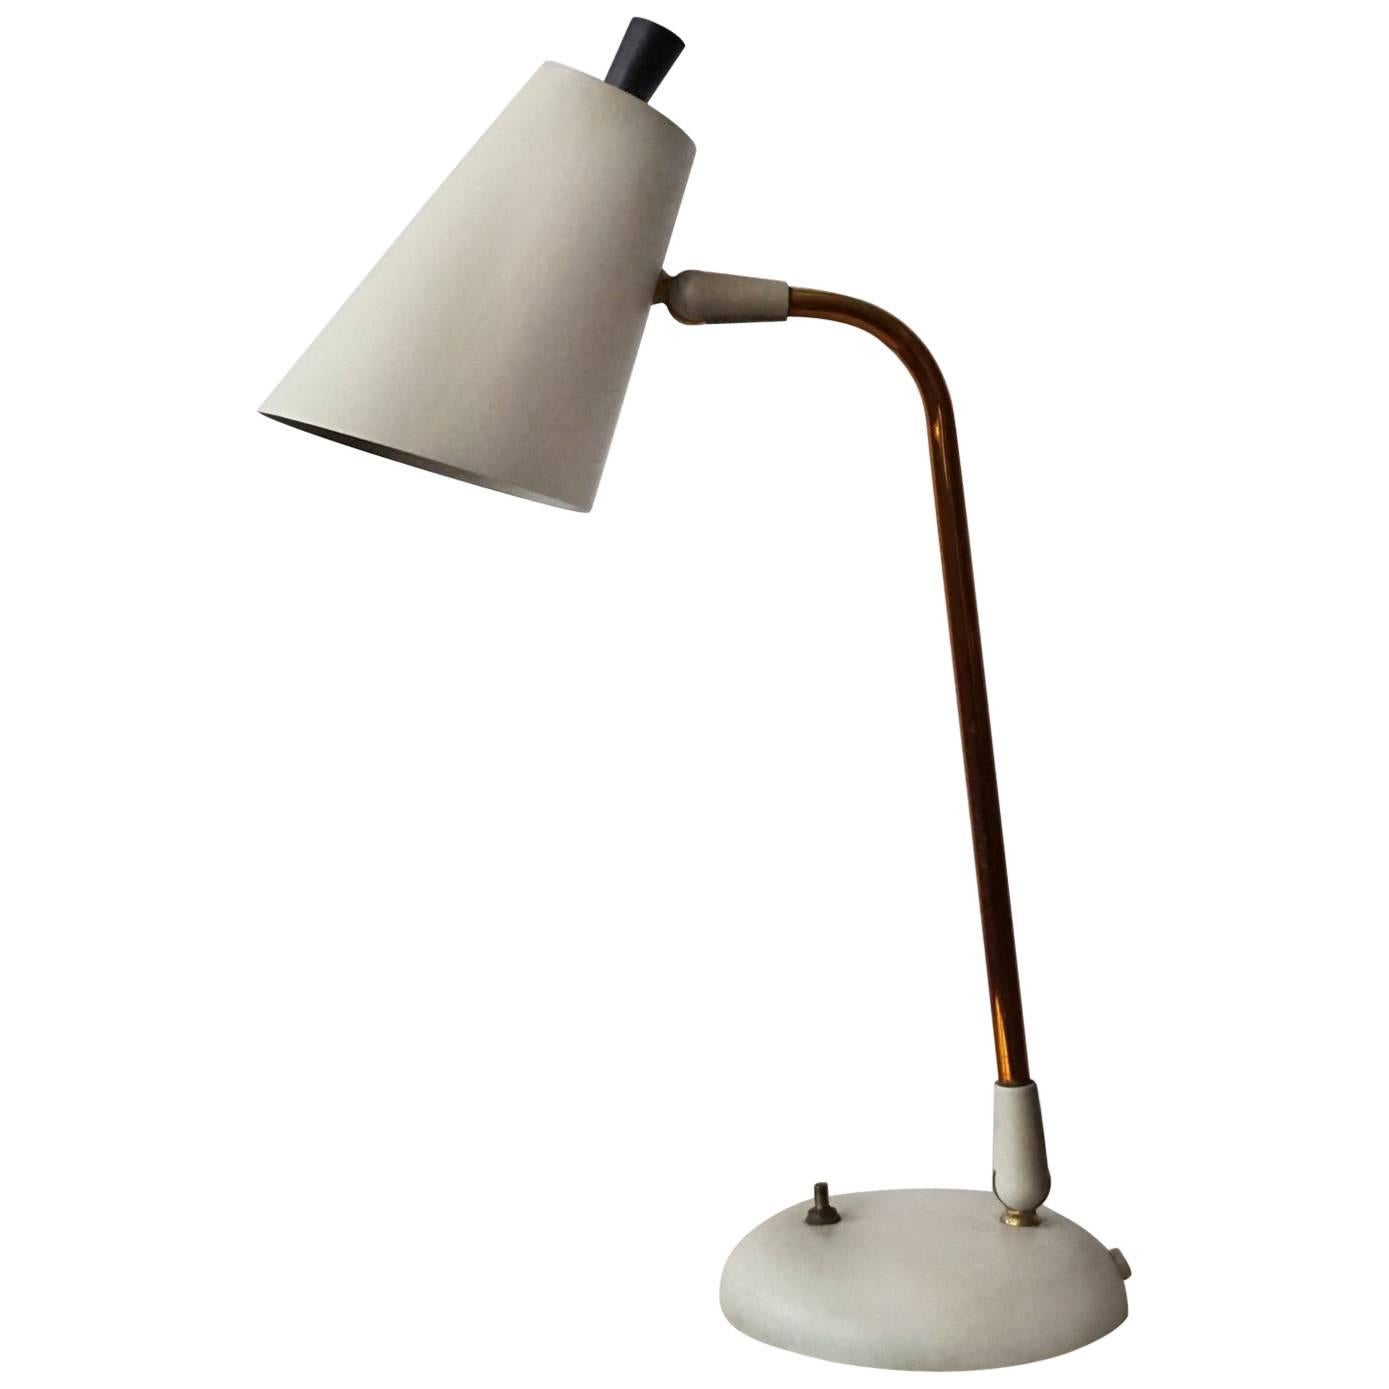 Ordinaire Gerald Thurston For Lightolier Table Lamp, 1950s For Sale